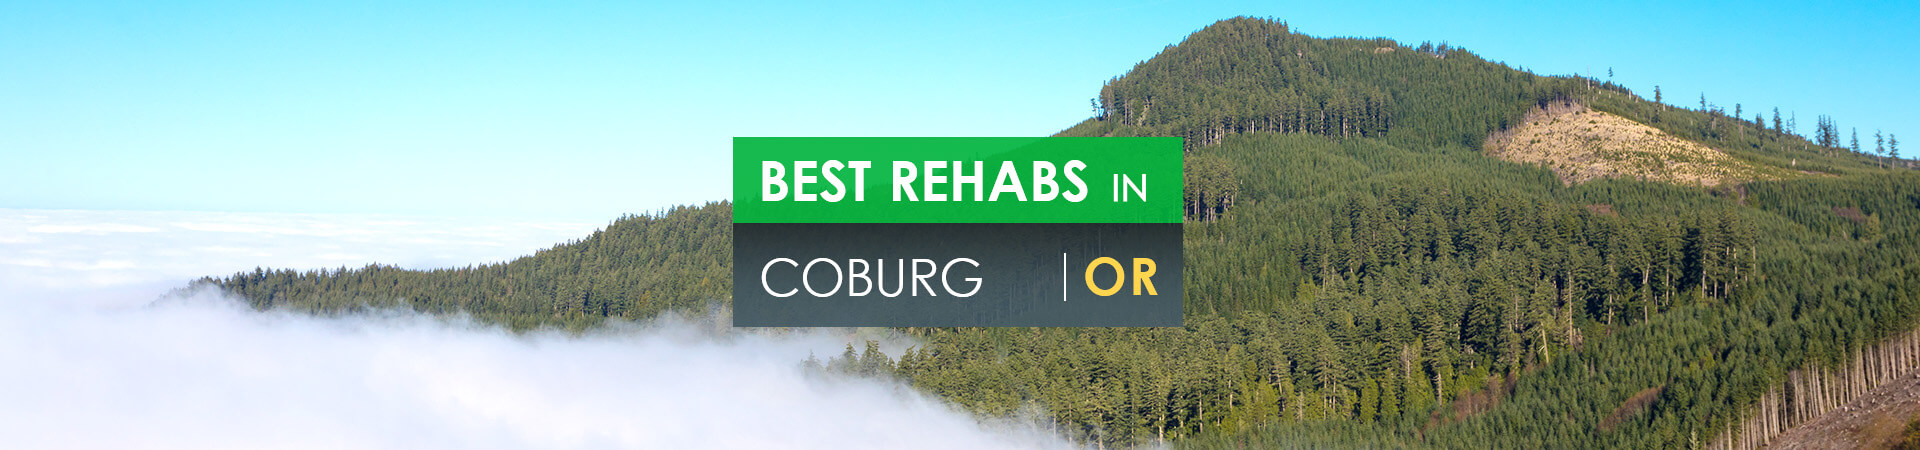 Best rehabs in Coburg, OR